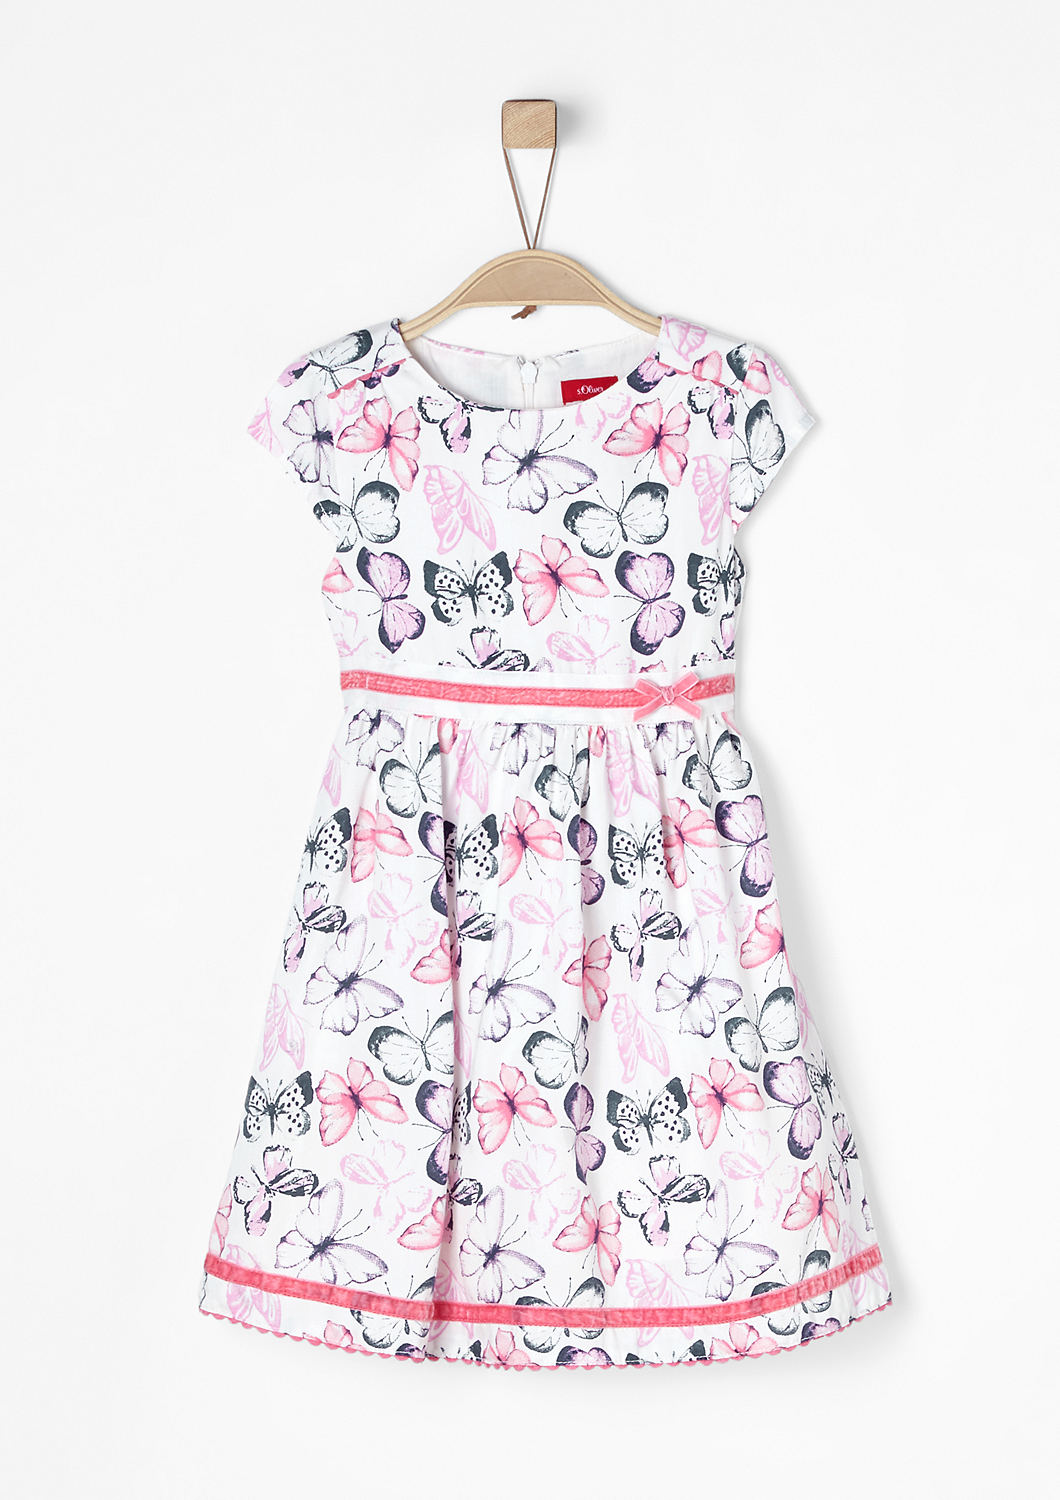 new arrival 5c6a1 c8f3b Buy Dress with a butterfly print   s.Oliver shop